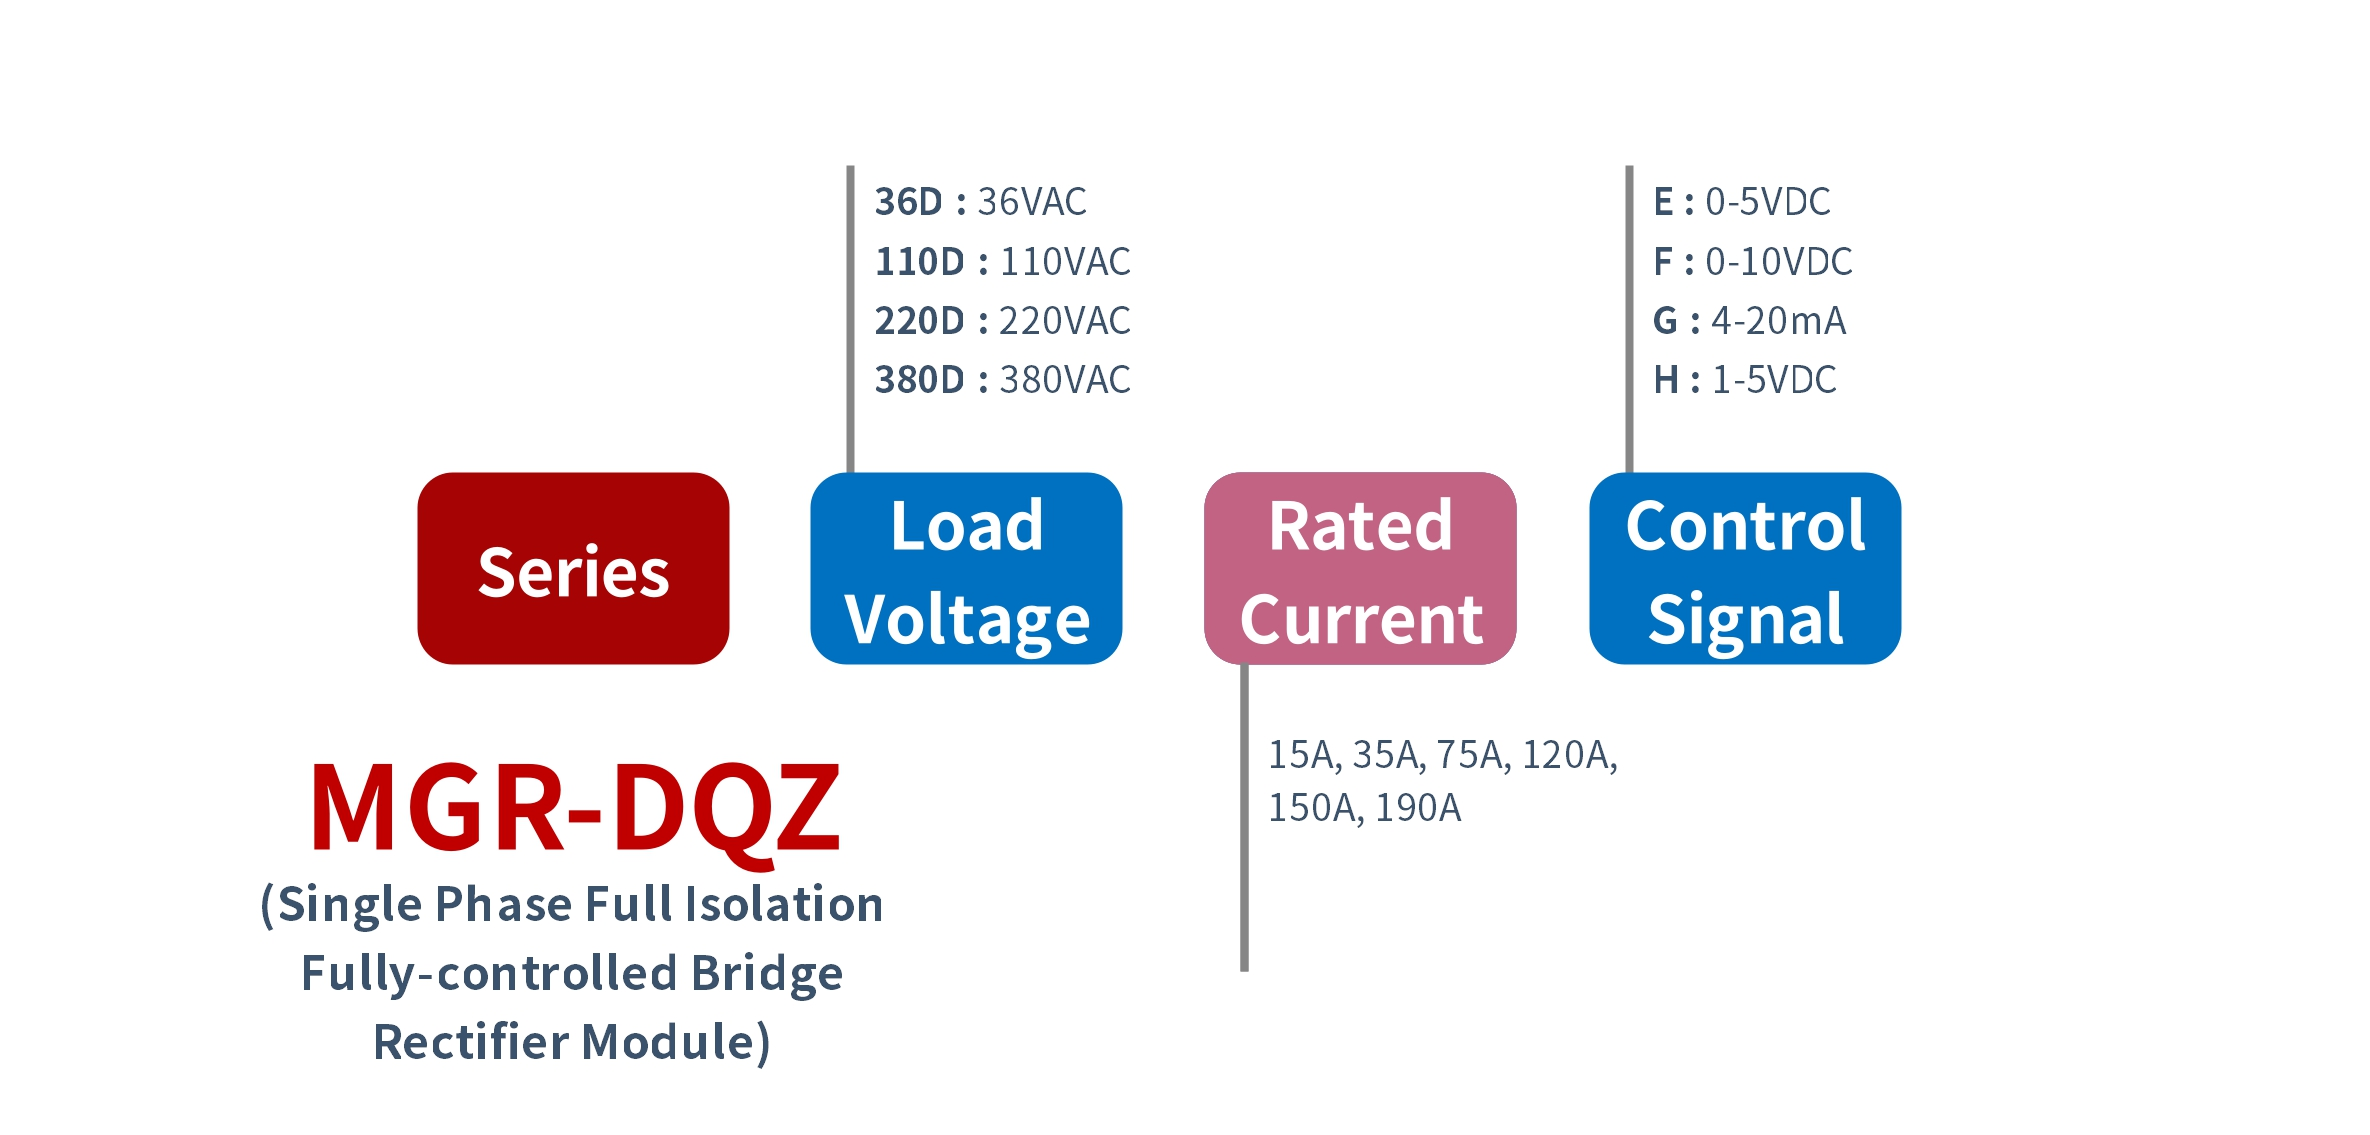 How to order MGR-DQZ Series Solid State Rectifier